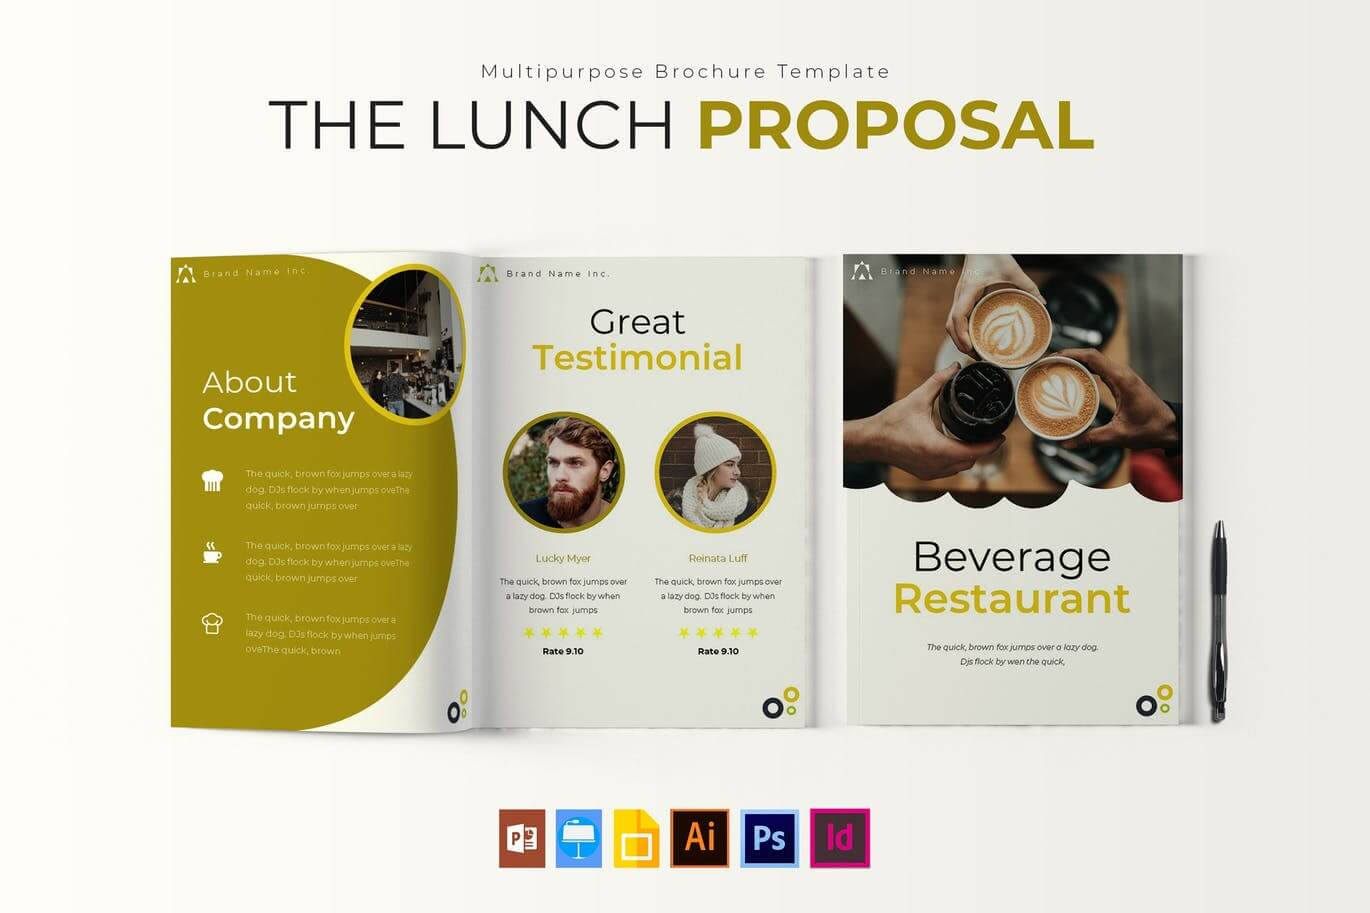 The Lunch Brochure Template